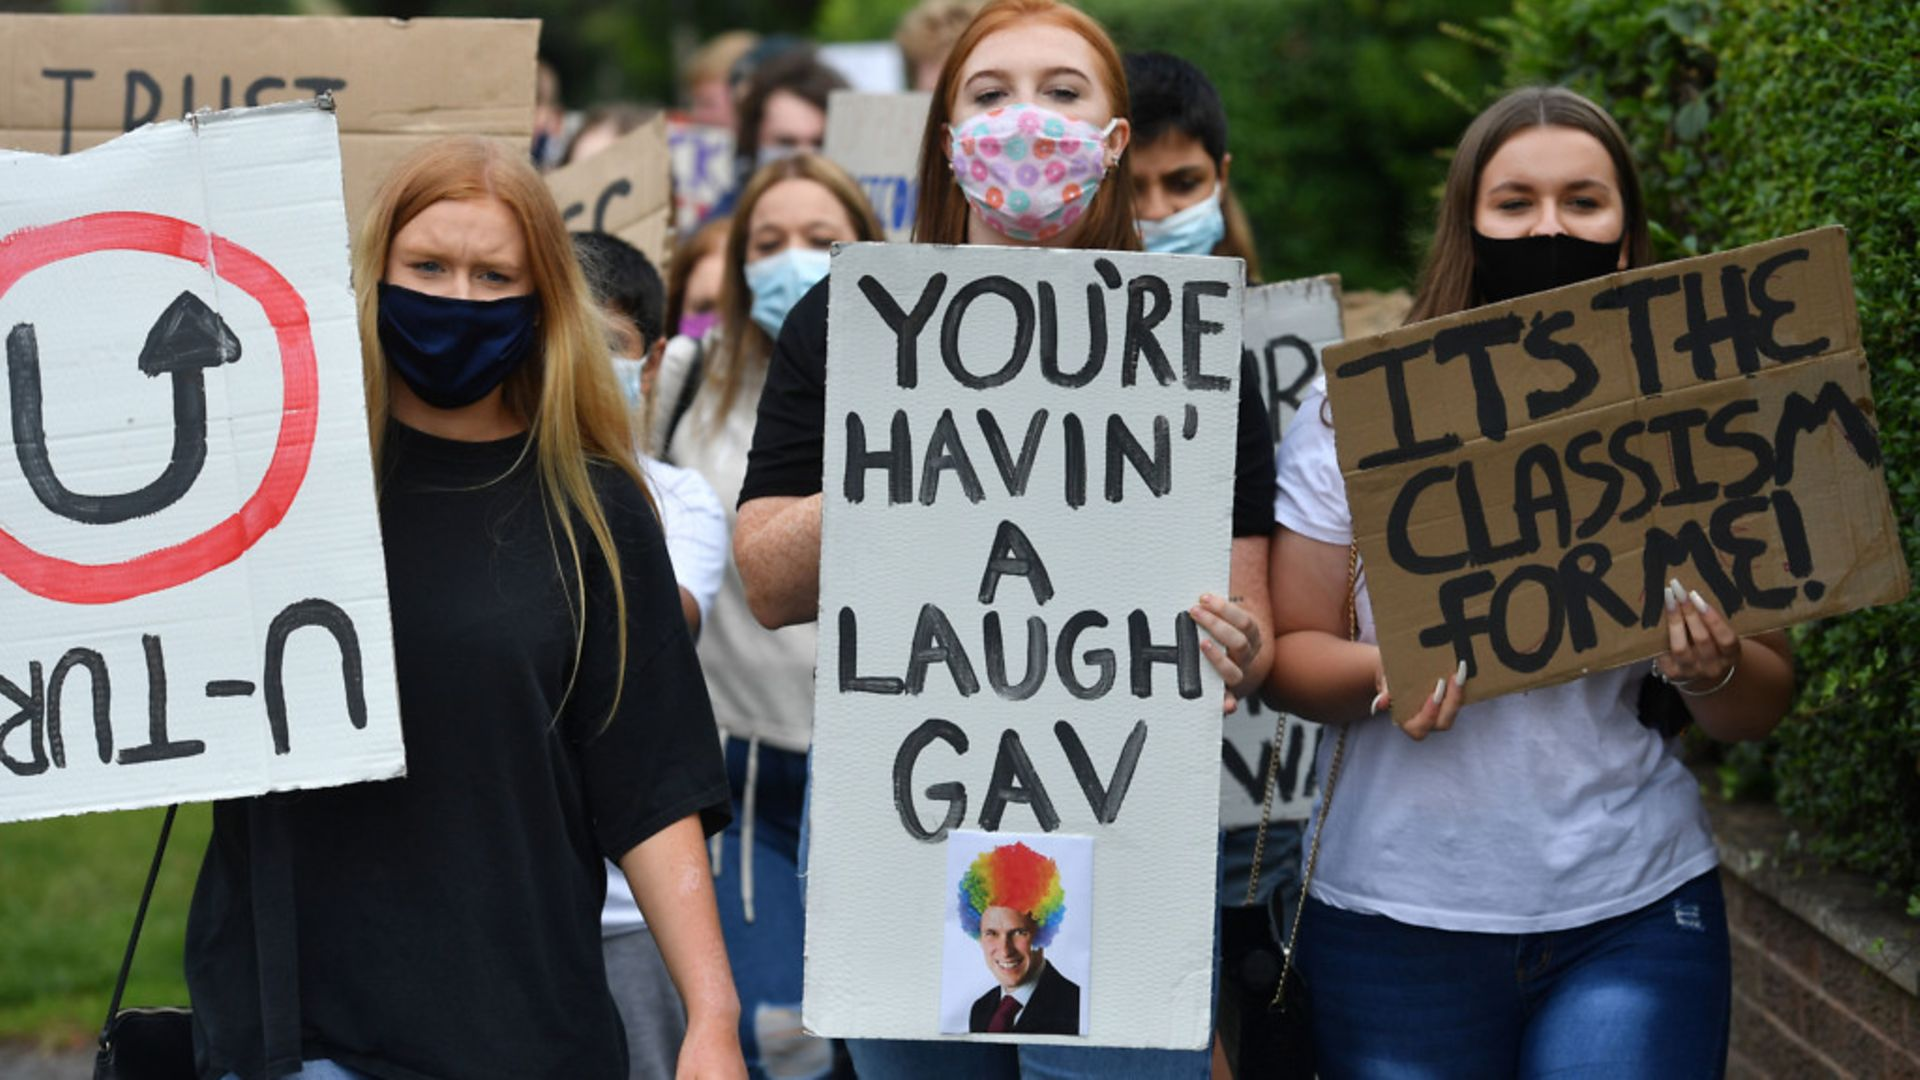 Students from Codsall Community High School march to the constituency office of their local MP Gavin Williamson, who is also the education secretary - Credit: PA